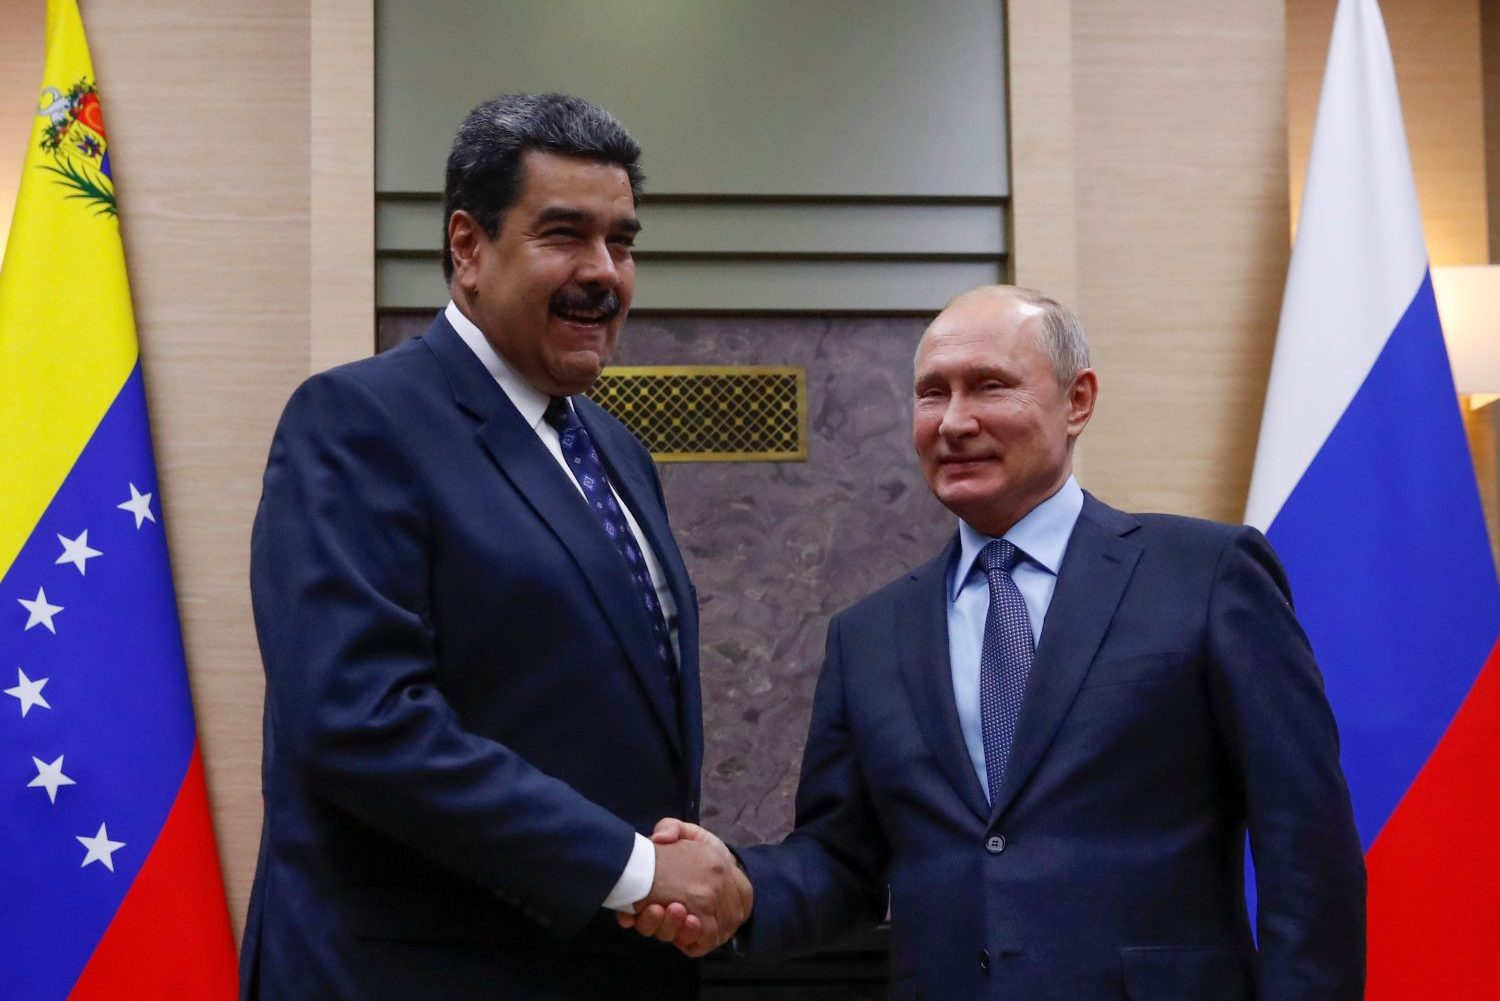 Russia S Intervention In Venezuela What S At Stake Atlantic Council